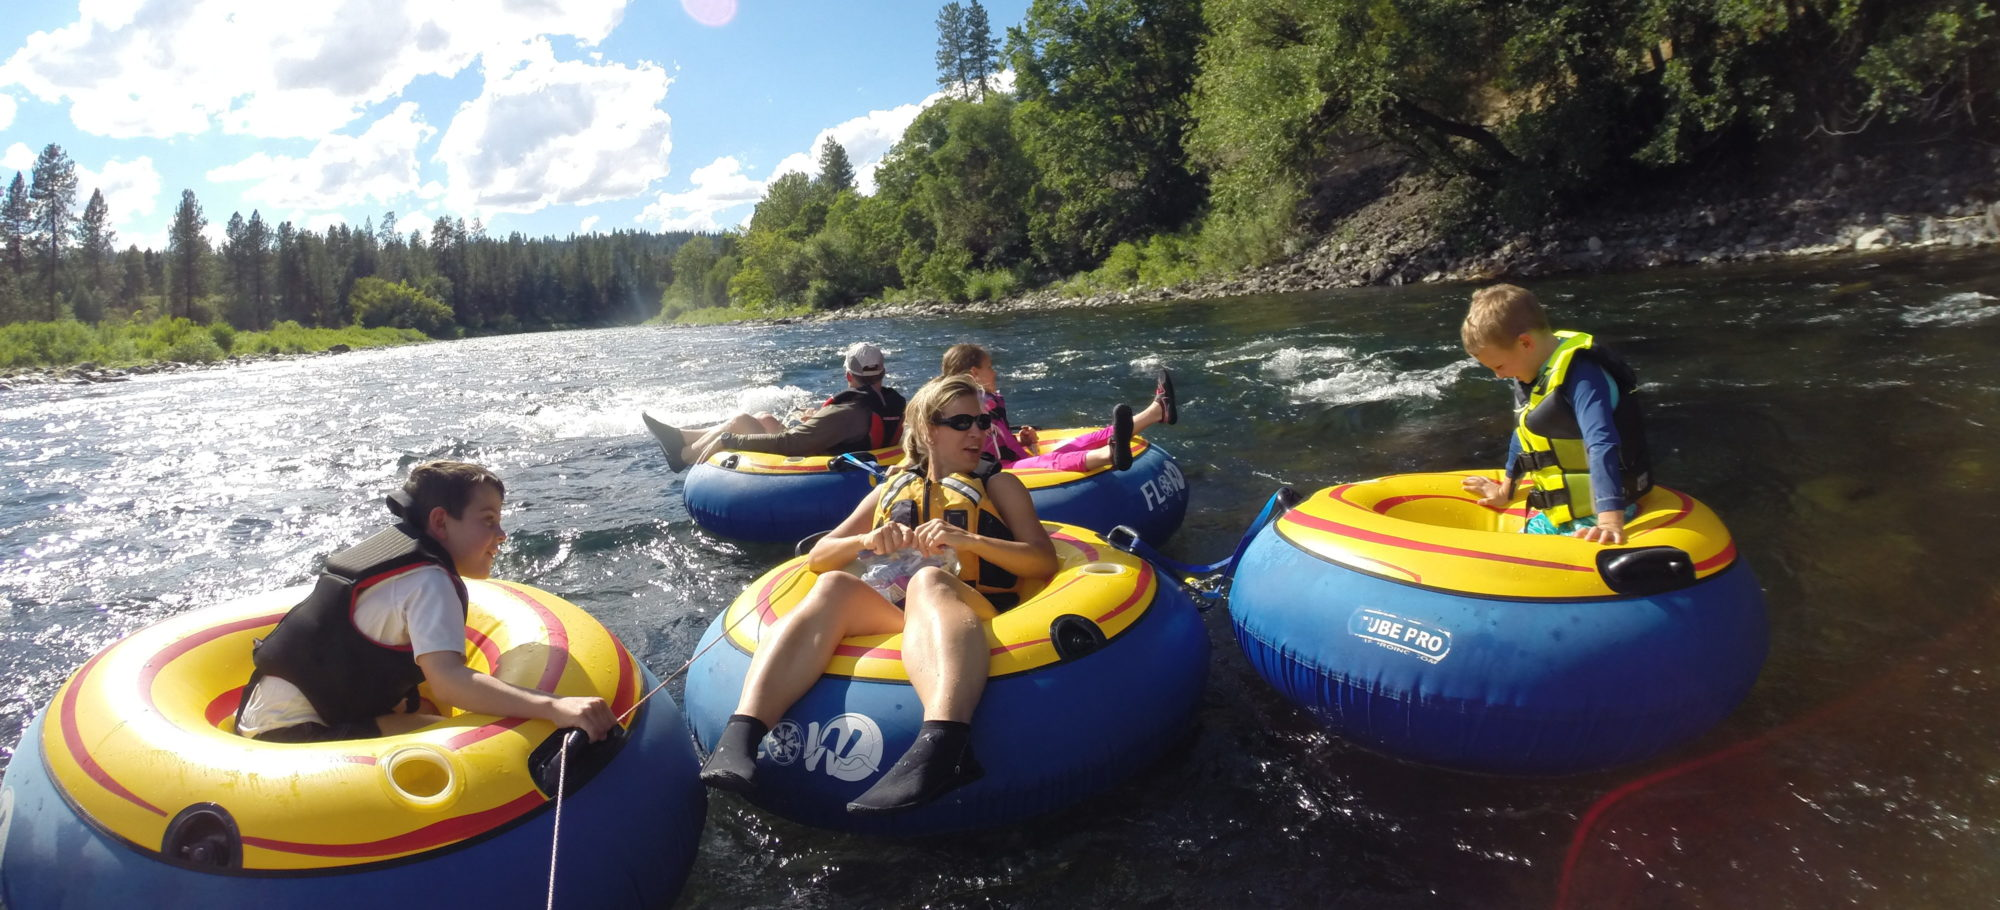 Mom, dad, and children tubing on the Spokane River, using big blue and yellow inflatable tube rentals from FLOW Adventures. Small whitewater rapids on the water and trees along the riverbank.